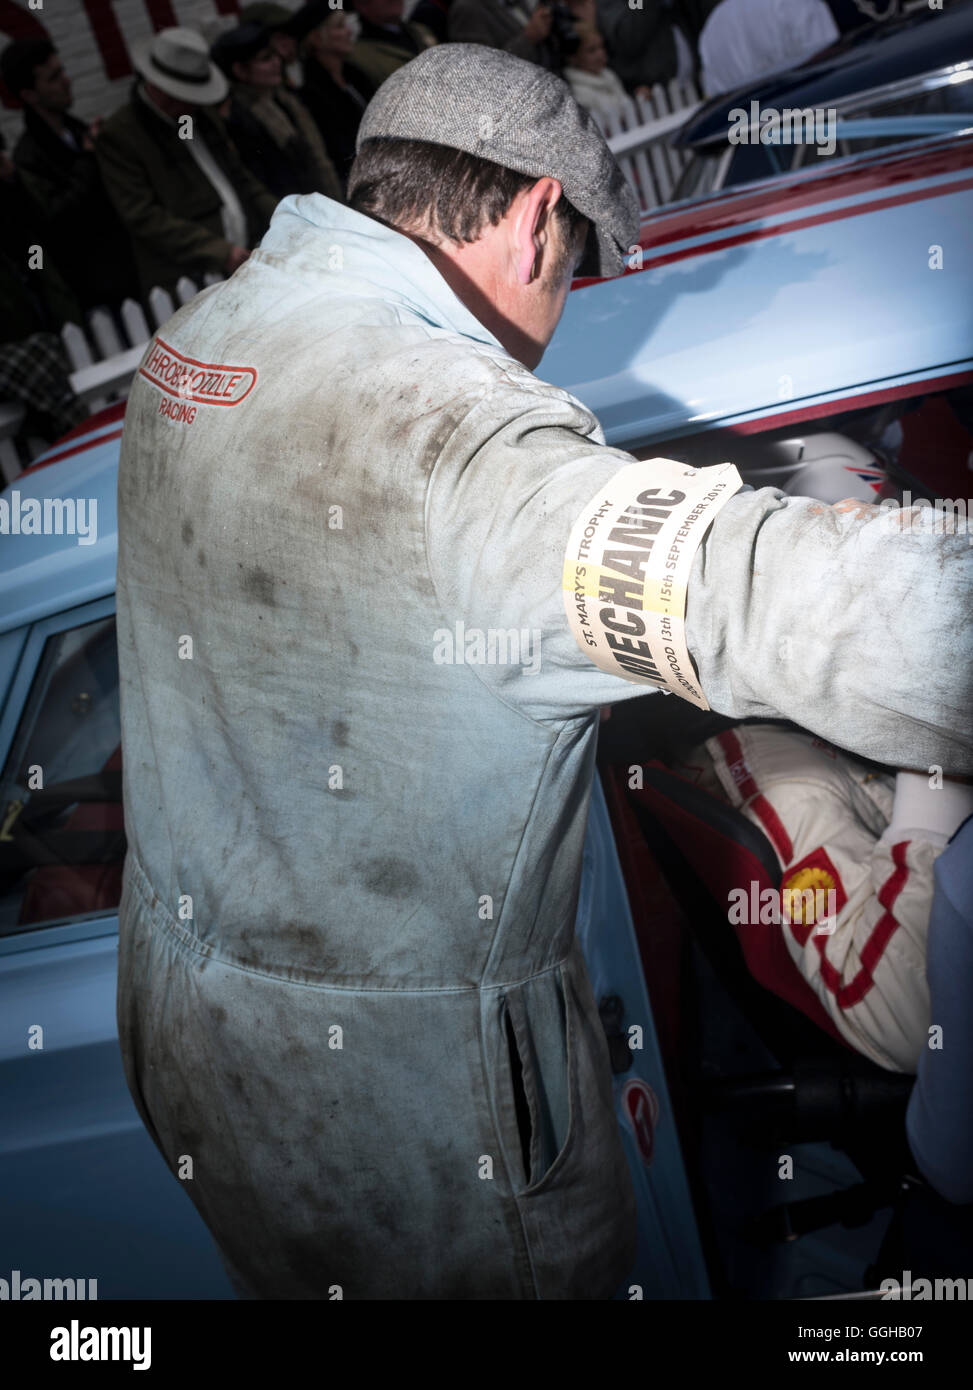 Mechanic, Goodwood Revival, racing, car racing, classic car, Chichester, Sussex, United Kingdom, Great Britain - Stock Image